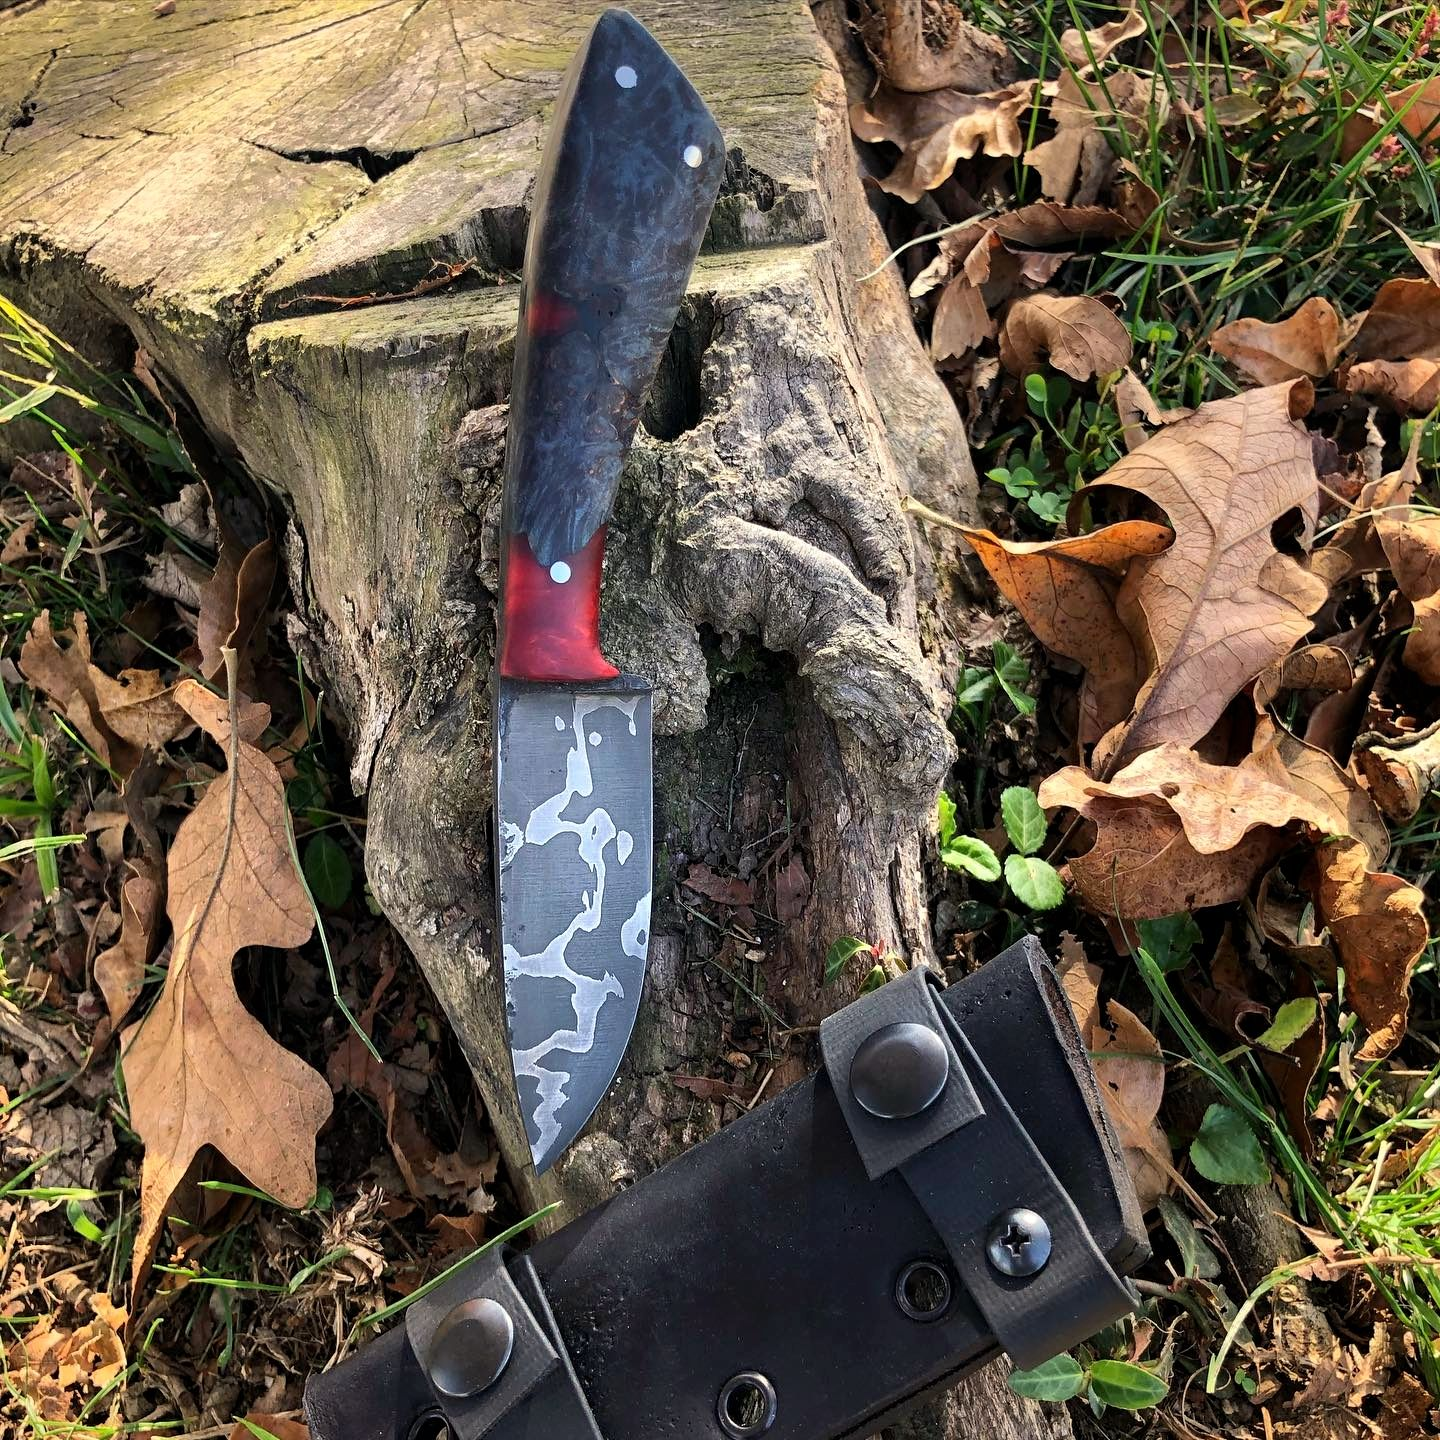 New blade from @black_bird_blades with some lovely low-layer steel! Available—Sheath finished and ready to find a home. 80CRV2 and 15N20 billet forged my coalironworks 12 ton press and the first of my blade heat treated with my new jenkenkilns kiln. Post or message if interested